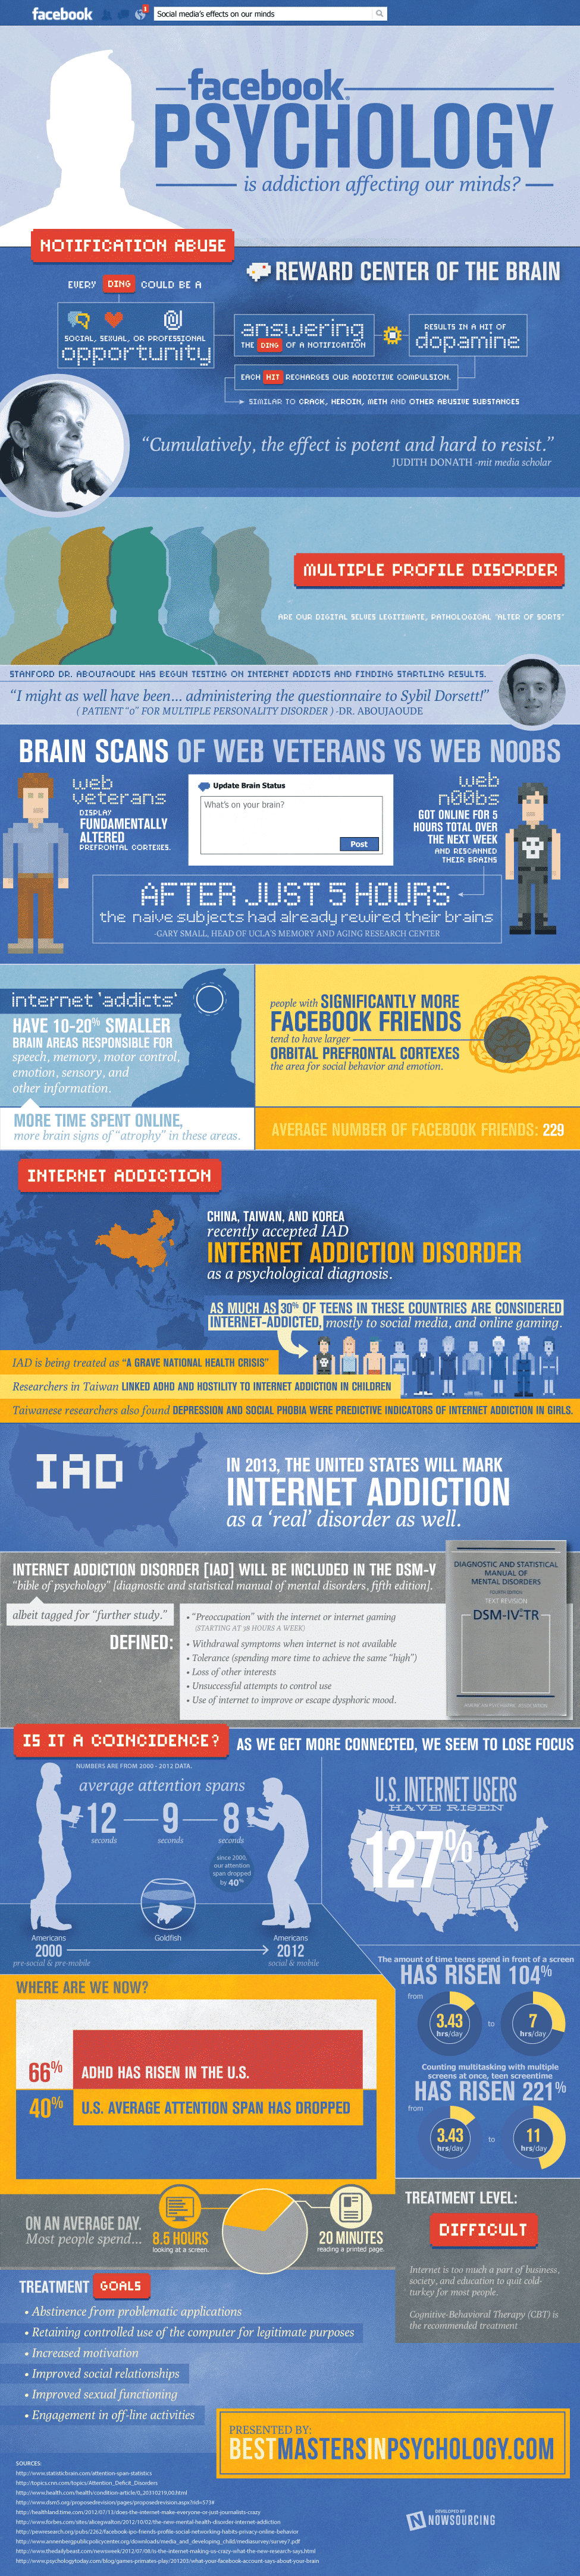 facebook-addiction-effects-psychology-infographic